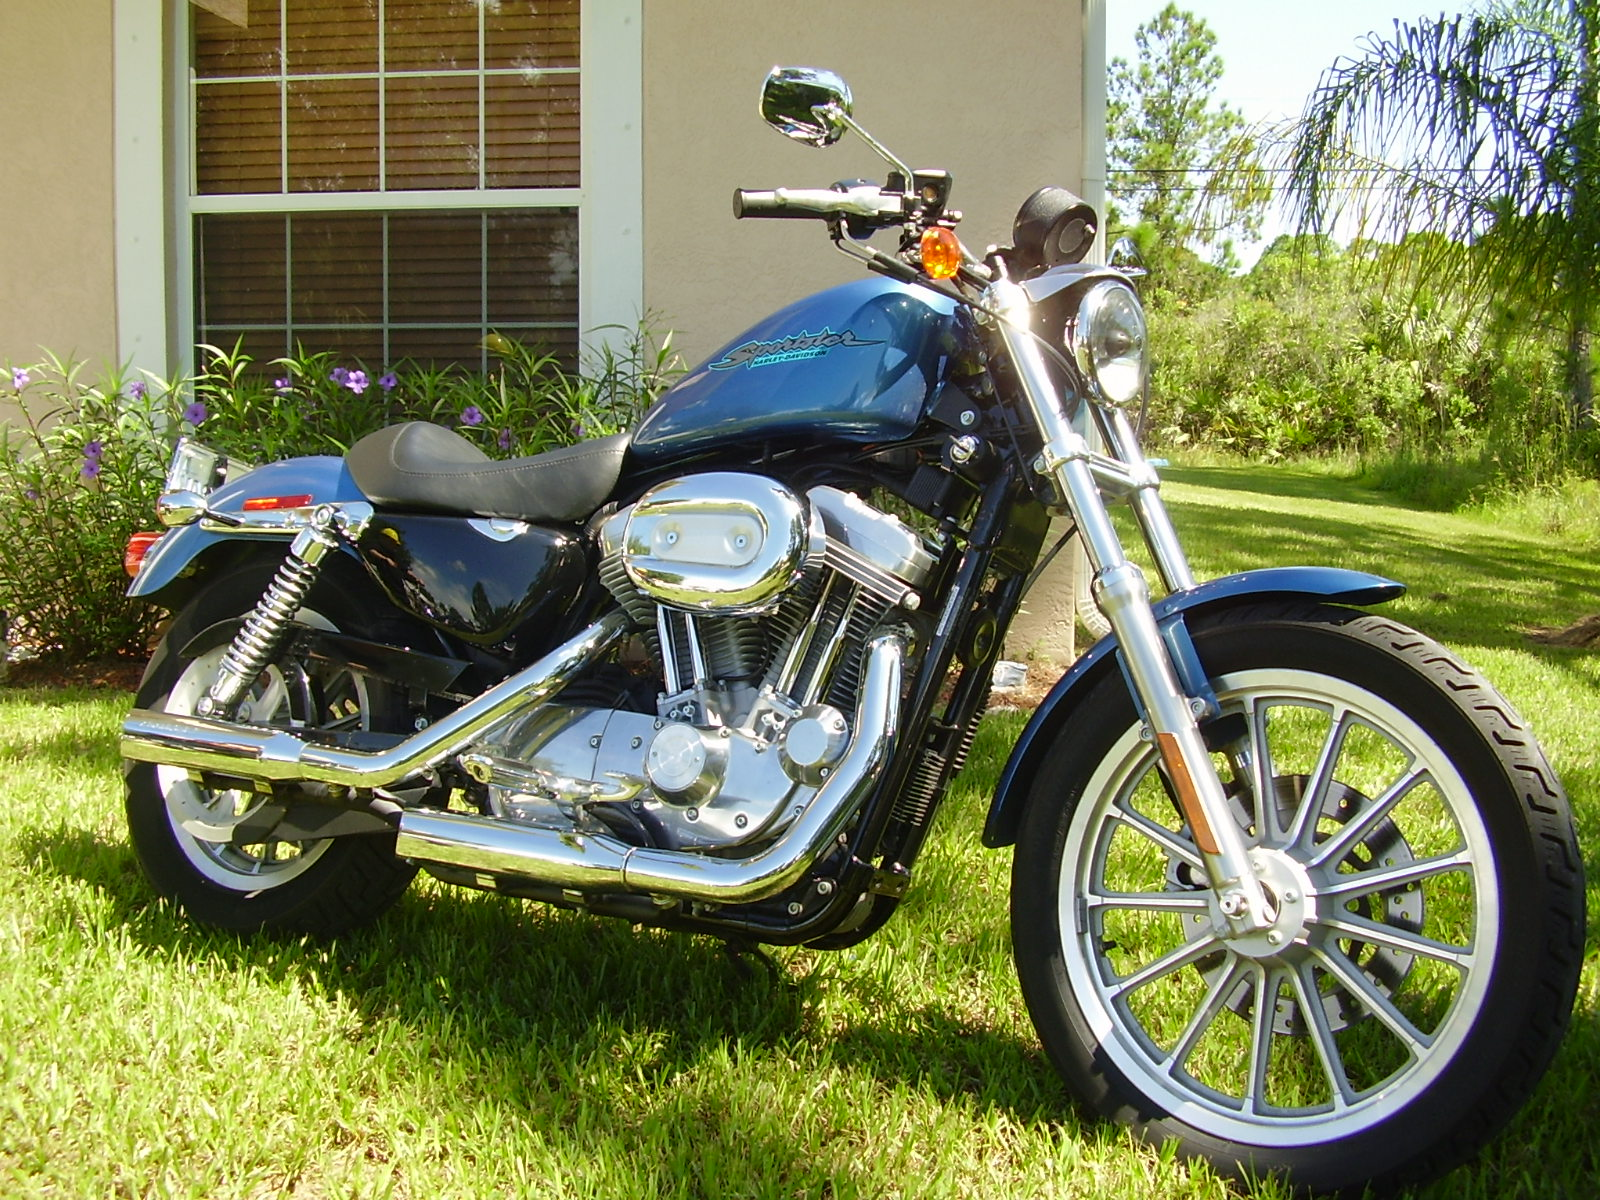 2005 harley-davidson sportster xl exhaust 1/4 mile drag racing